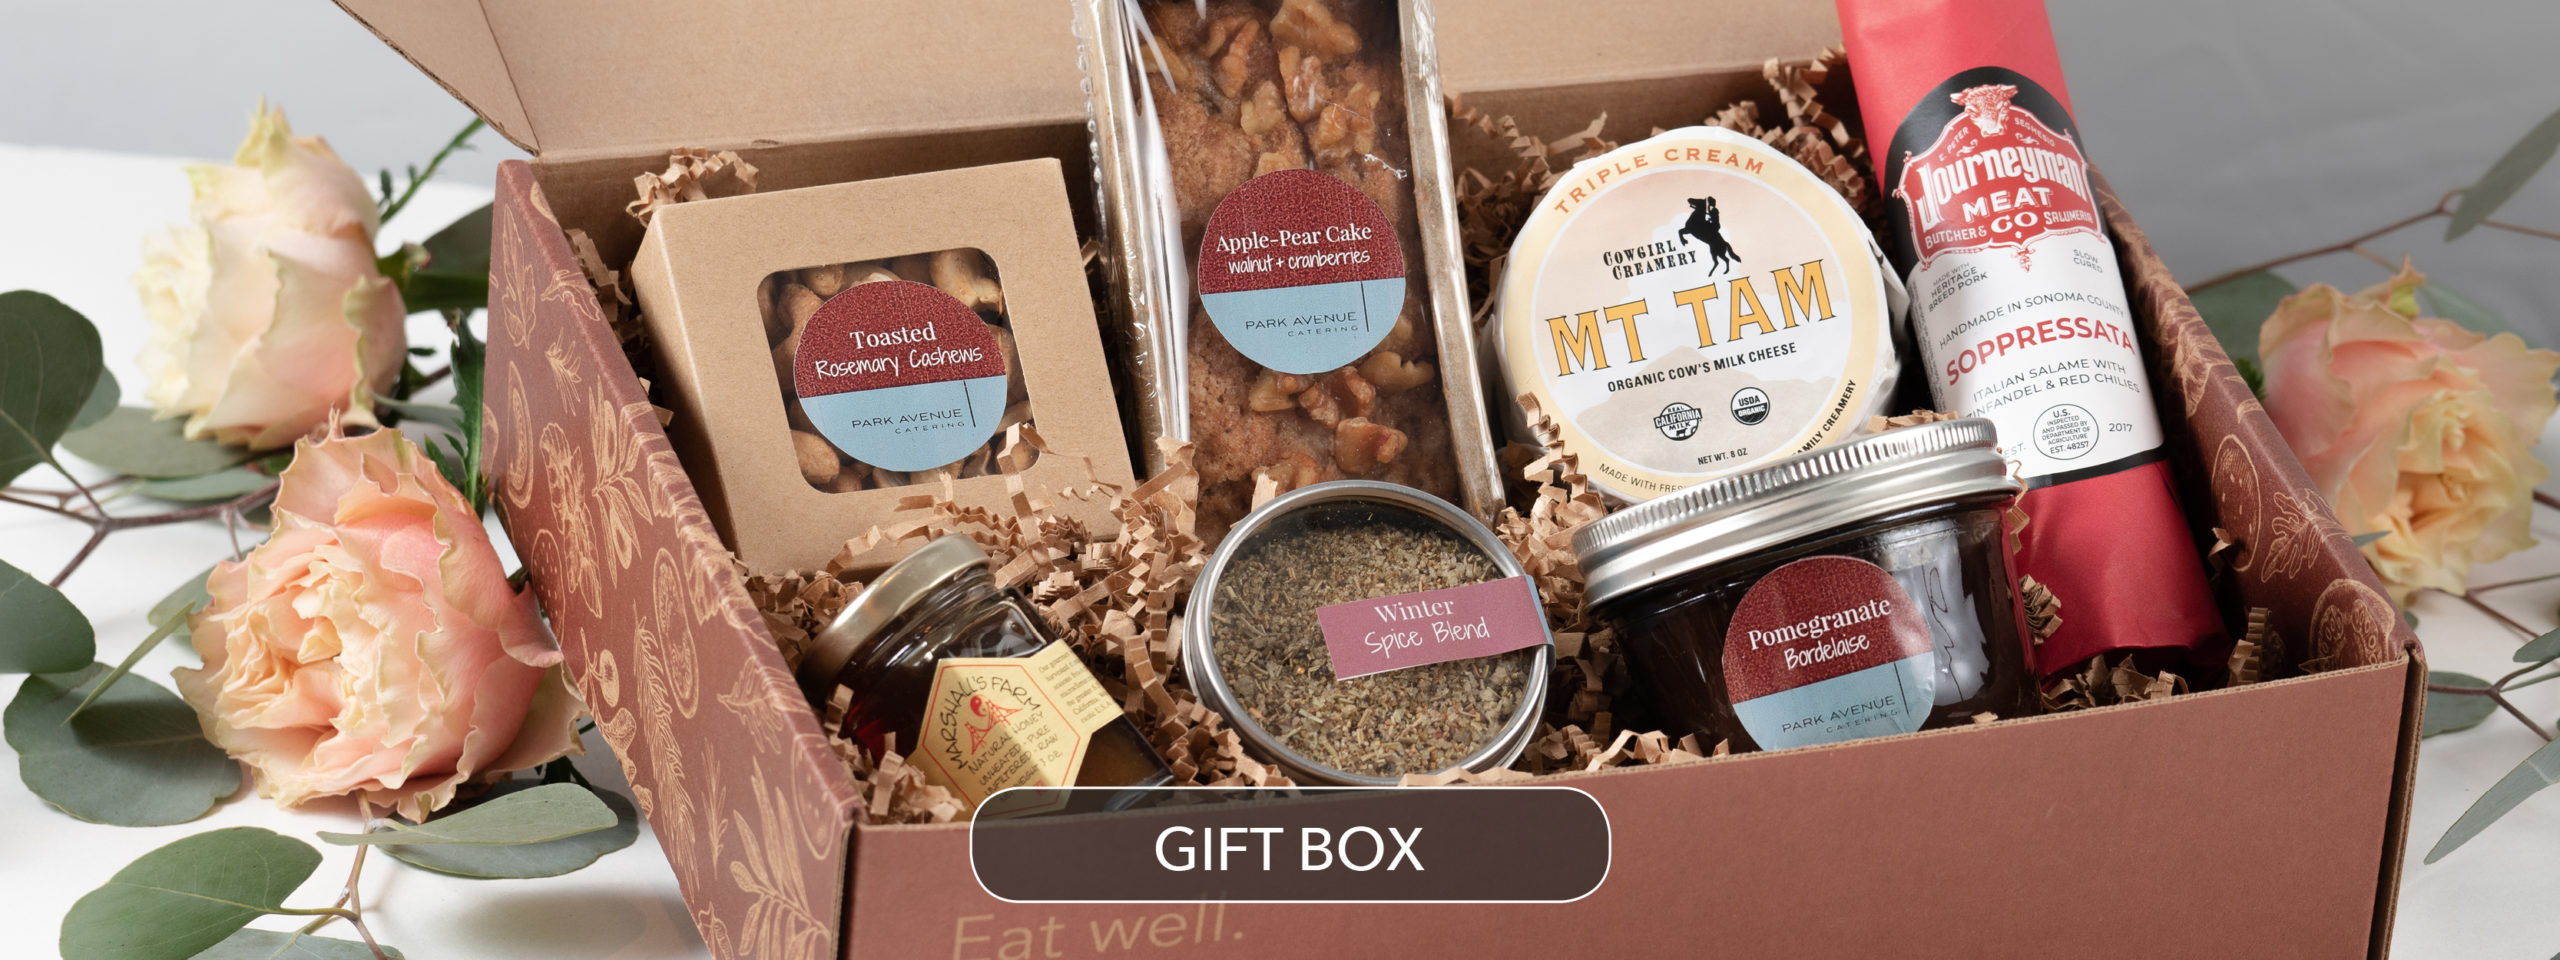 click image to visit Gift Boxes page